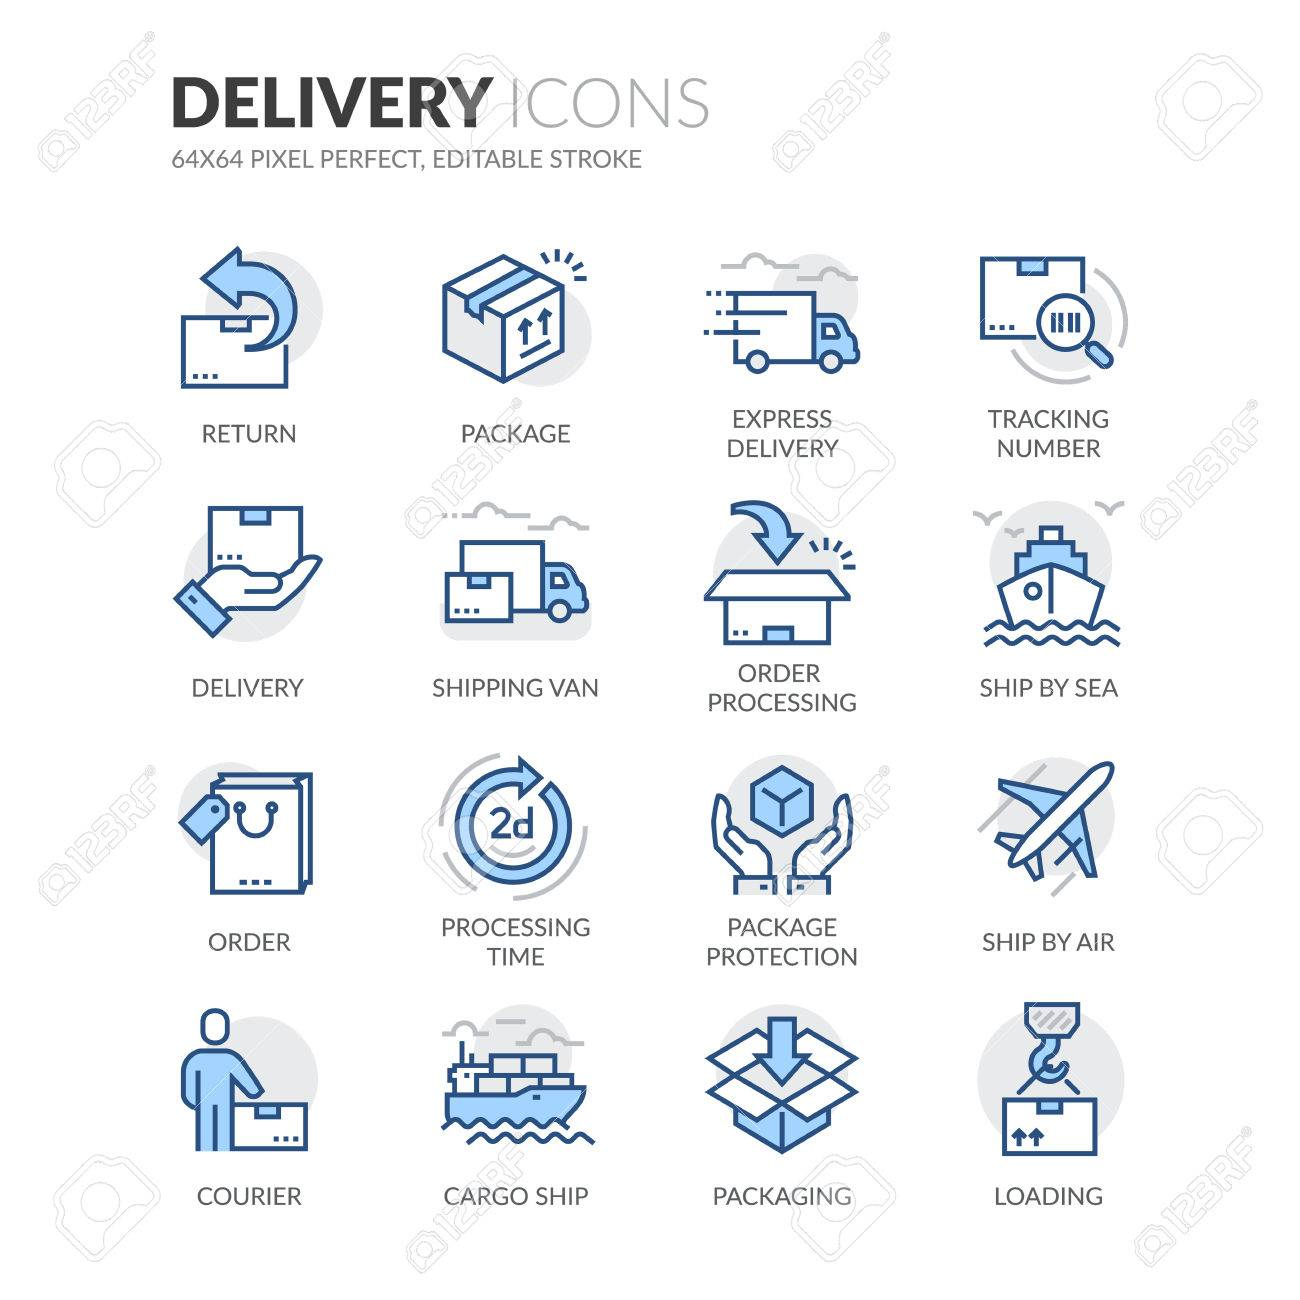 Simple Set of Delivery Related Color Vector Line Icons. Contains such Icons as Loading, Express Delivery, Tracking Number Search, Cargo Ship and more. Editable Stroke. 64x64 Pixel Perfect. - 59194883